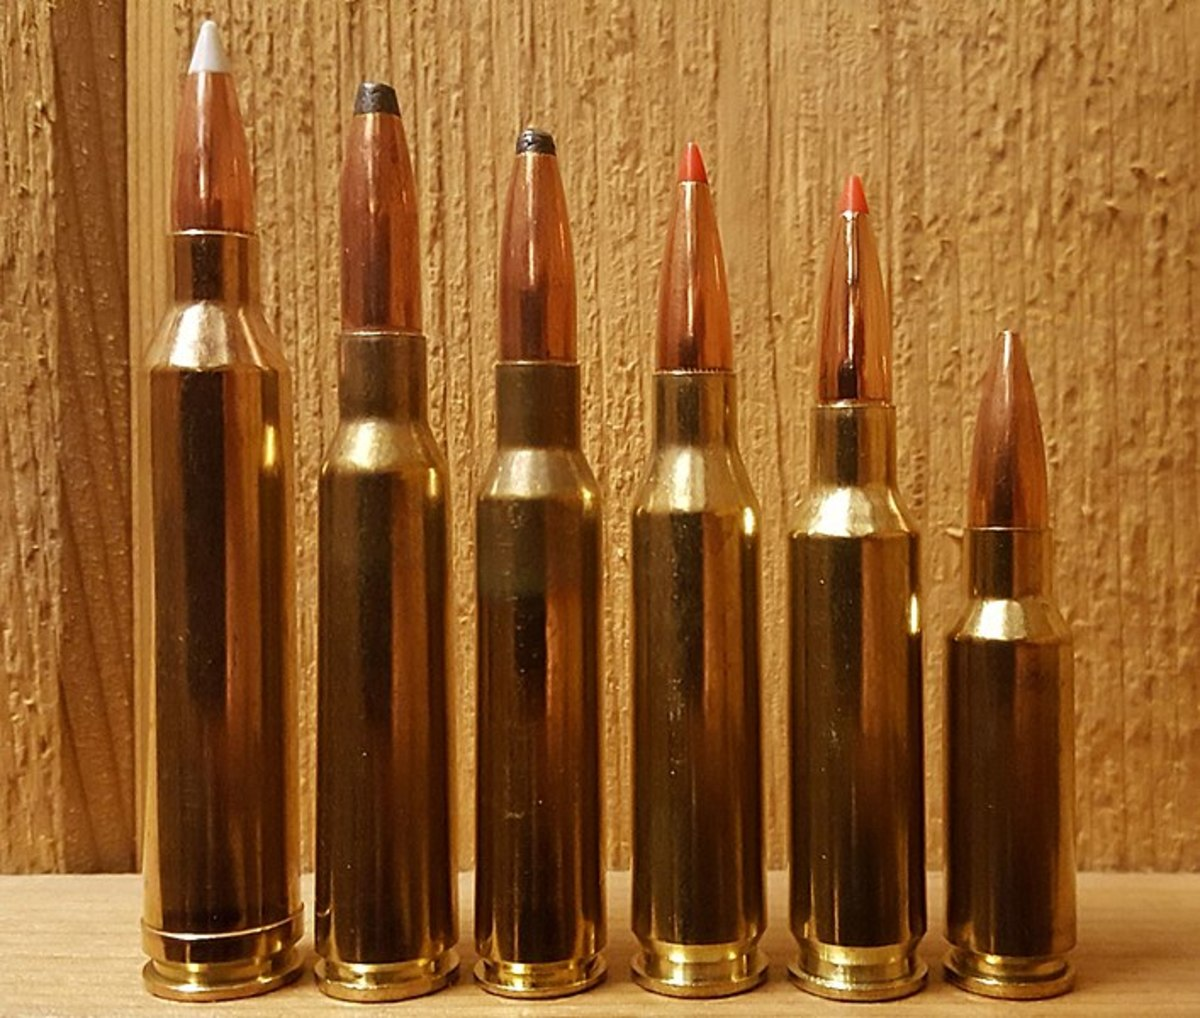 Author claims there are far more hunting cartridges on the market than necessary.